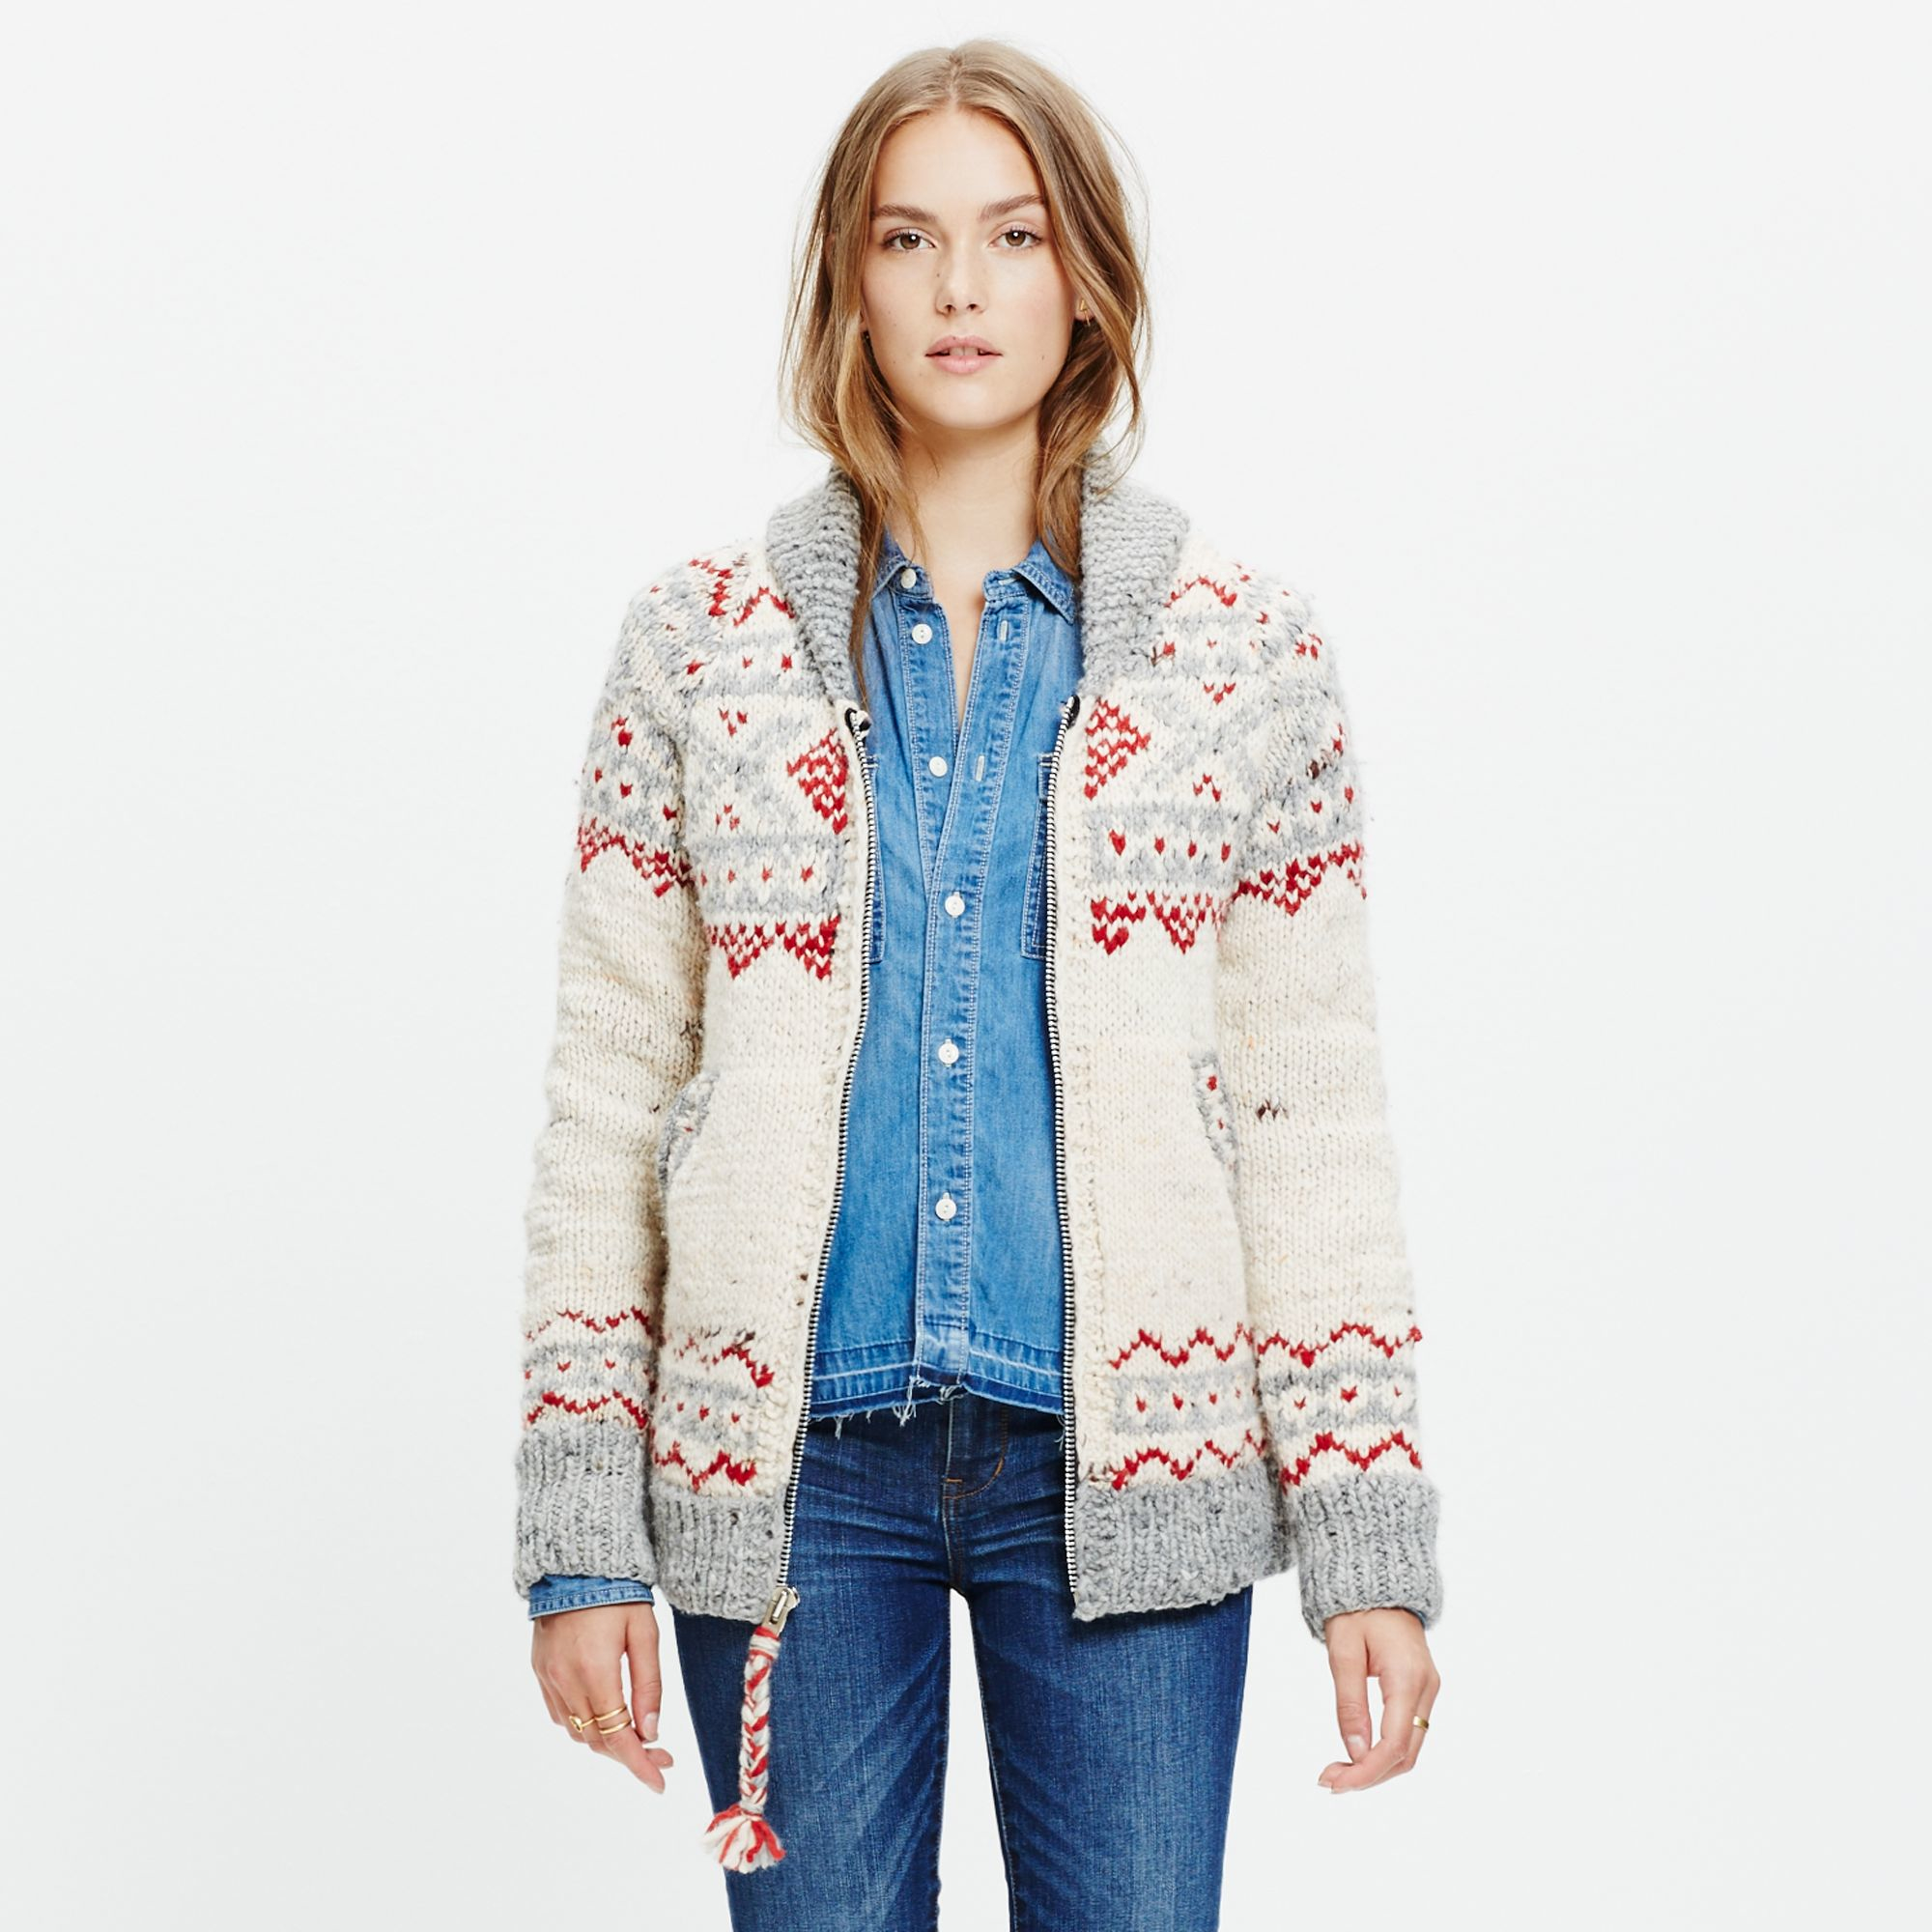 Madewell Chamula™ Fair Isle Cardigan Sweater in Natural | Lyst